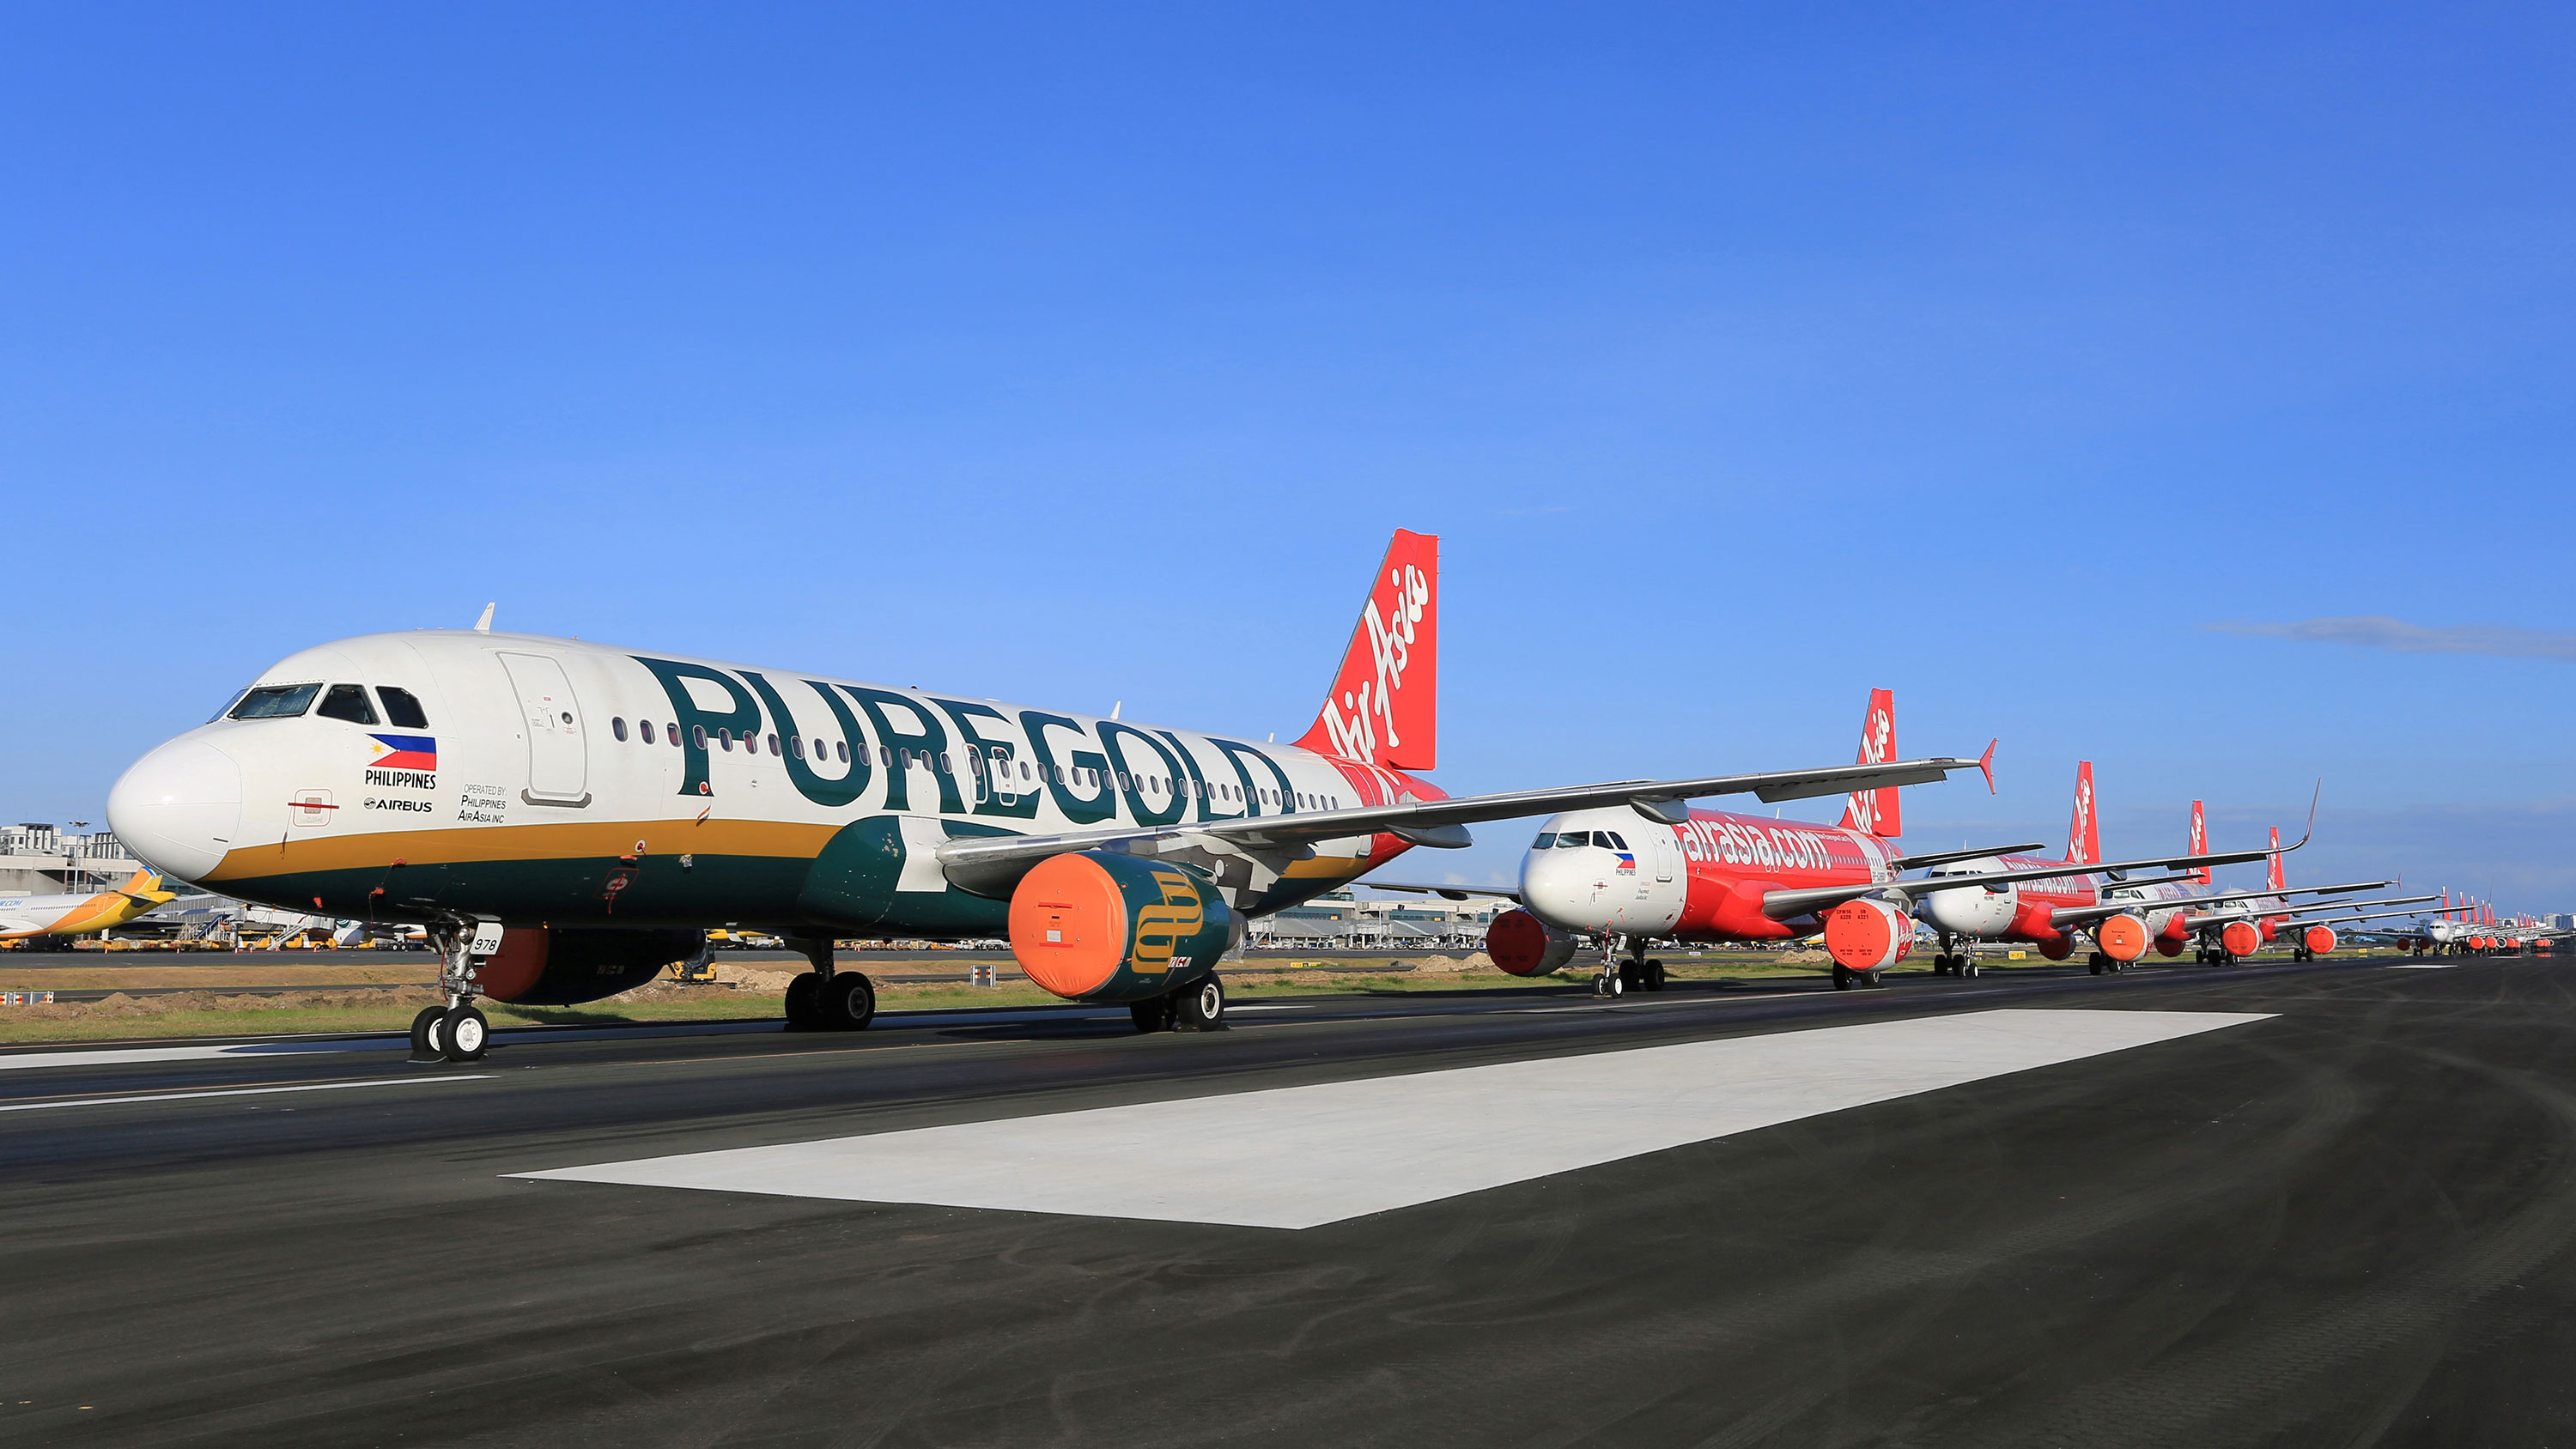 AirAsia passenger planes sit on the tarmac of Manila's international airport on April 19 in the Philippines.